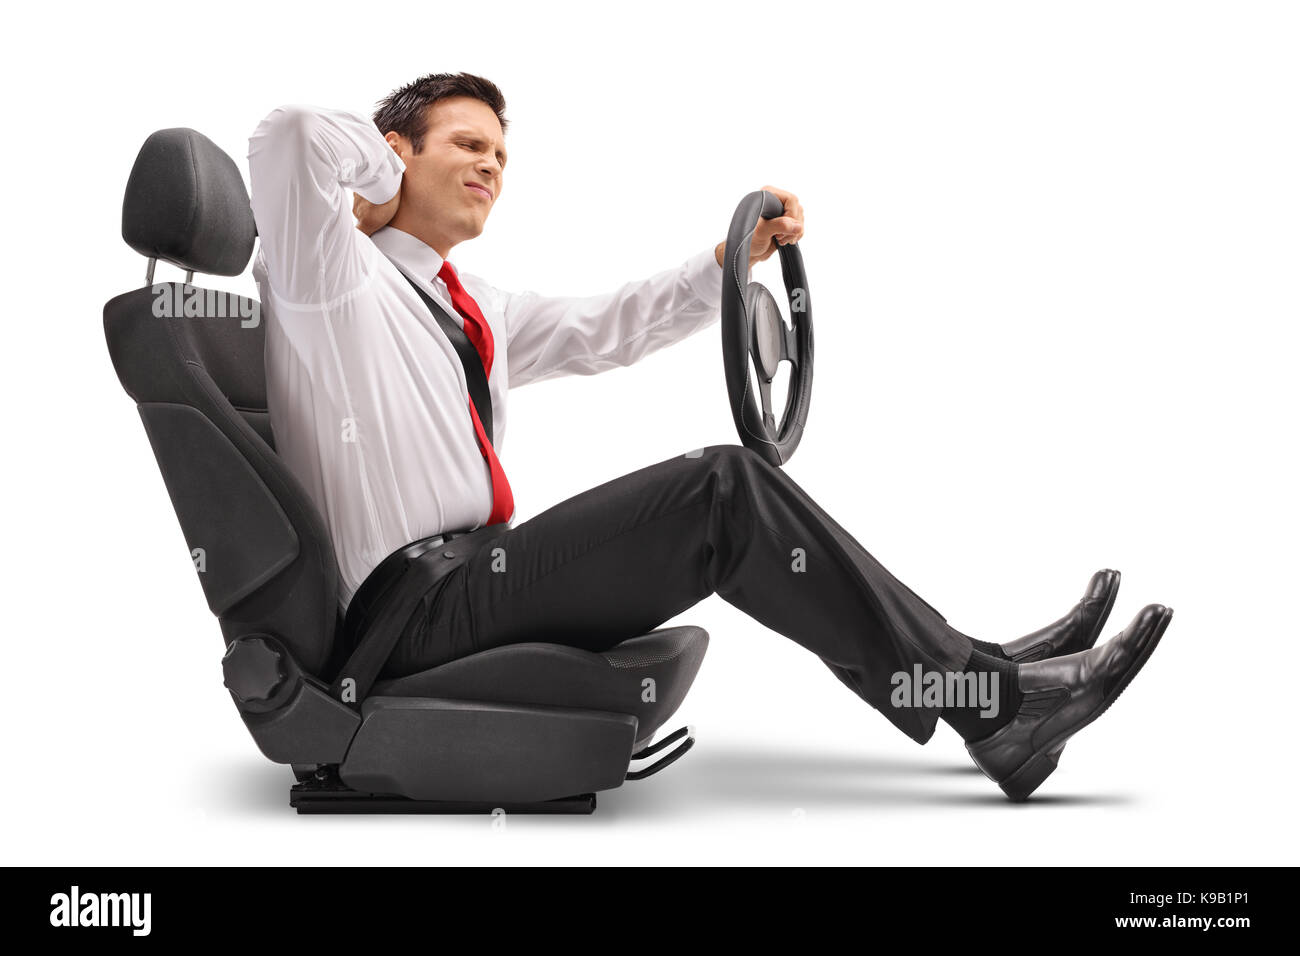 Elegant man seated in a car seat experiencing neck pain isolated on white background - Stock Image